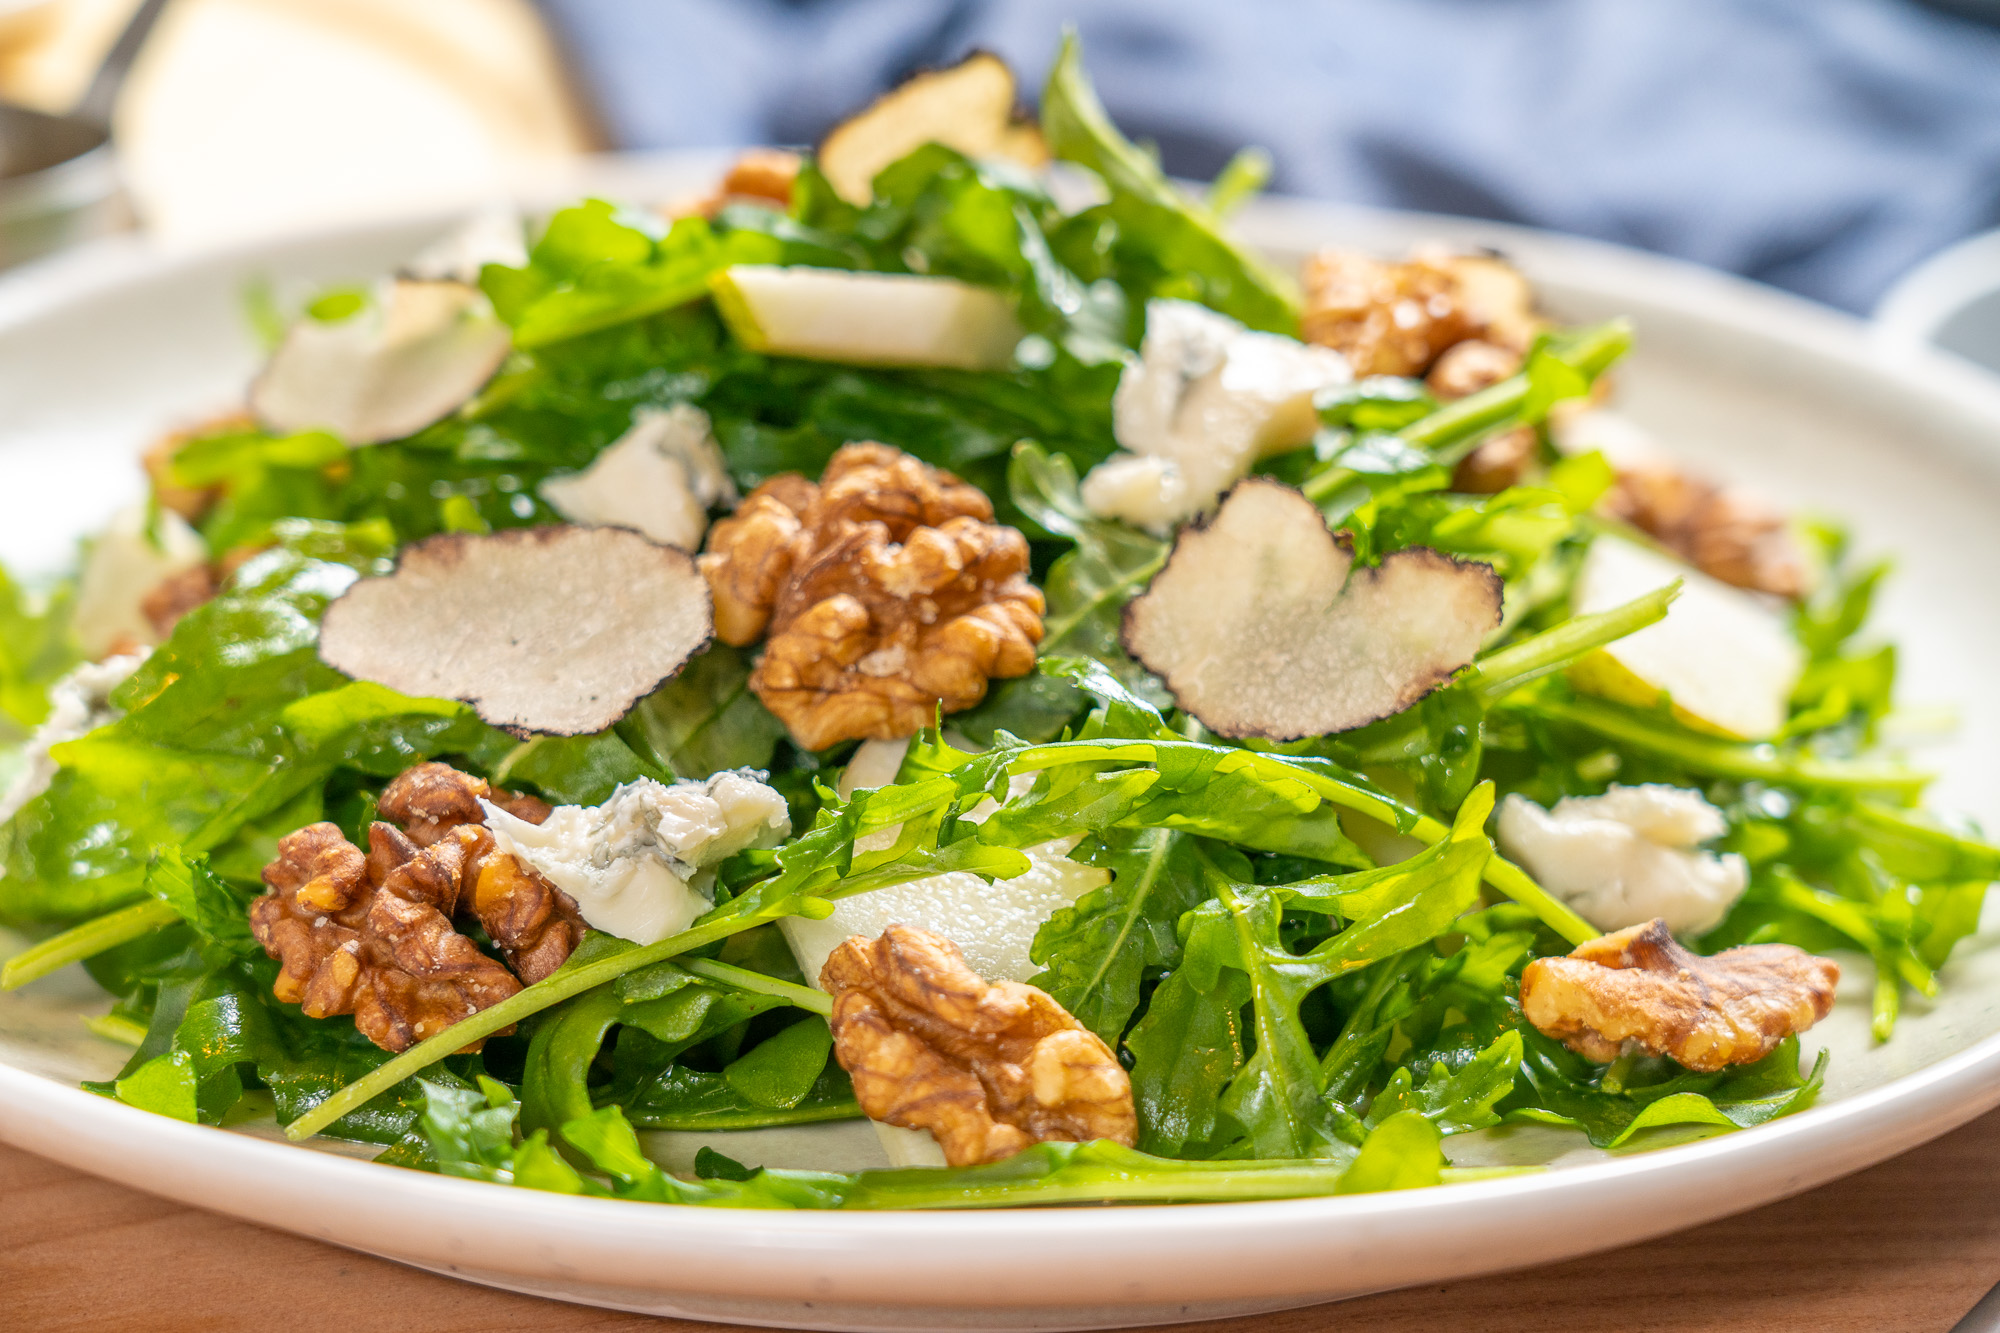 Arugula, Pear & Walnut Salad with Black Truffle Vinaigrette